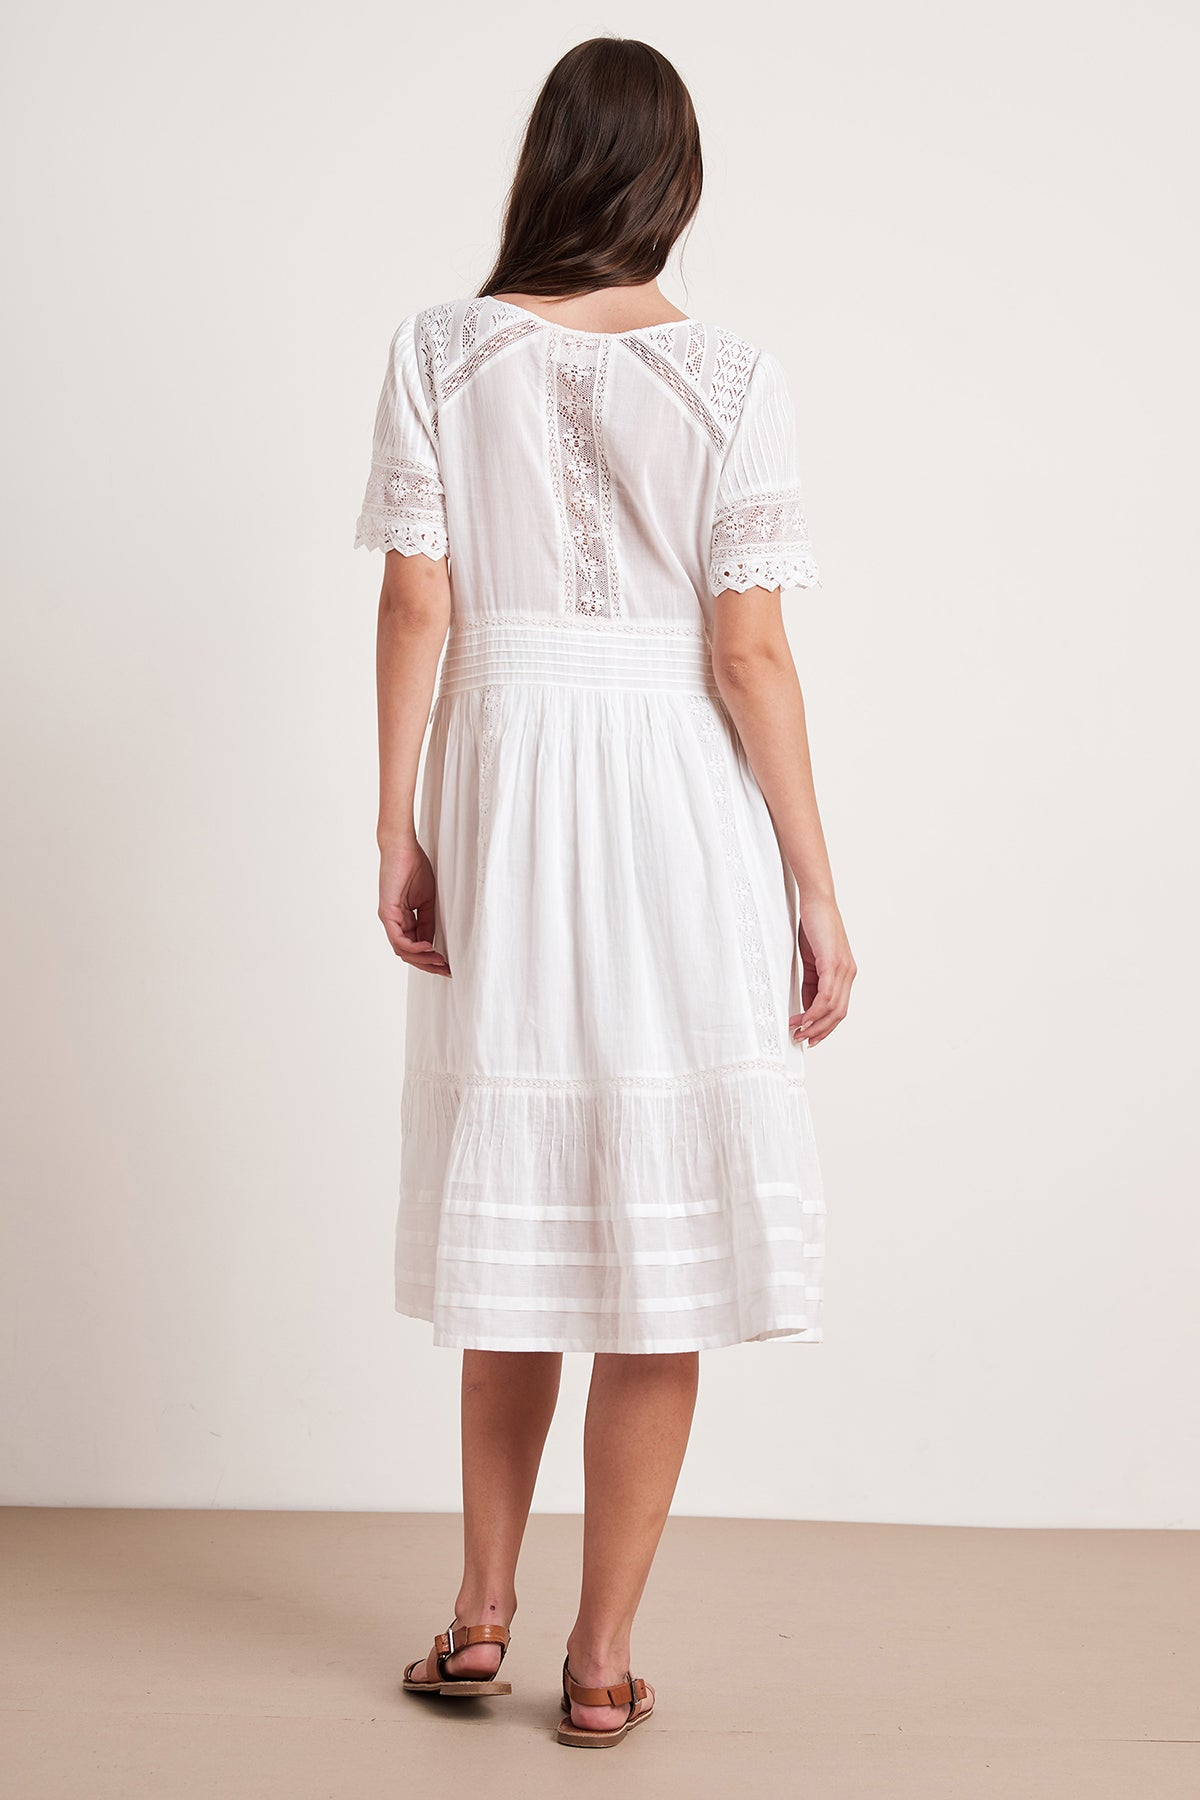 SURI COTTON LACE BUTTON-UP DRESS